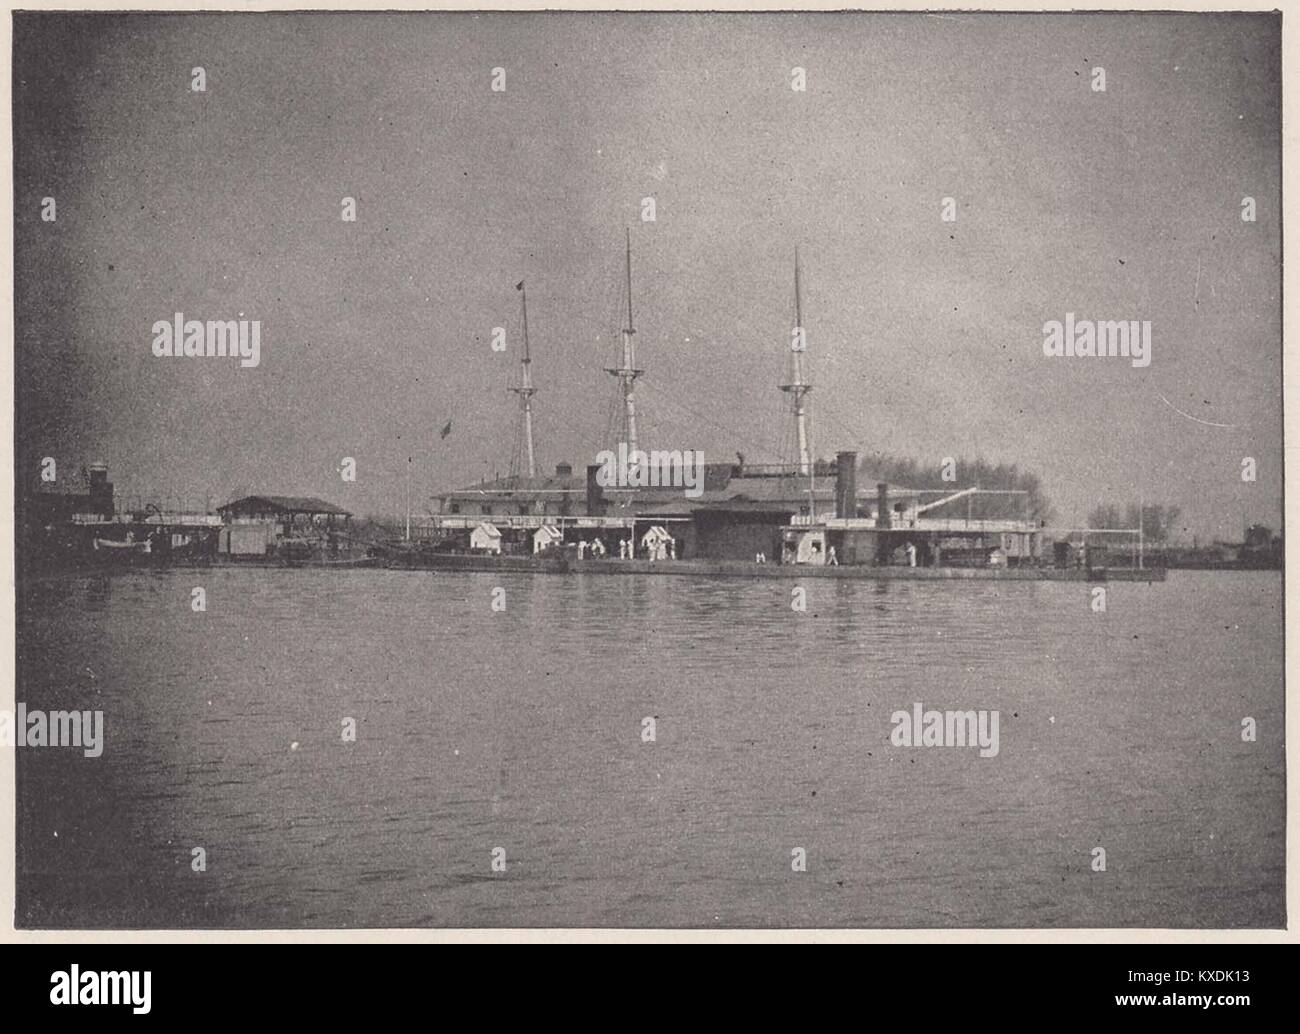 at league island navy yard the vessels shown in the picture are